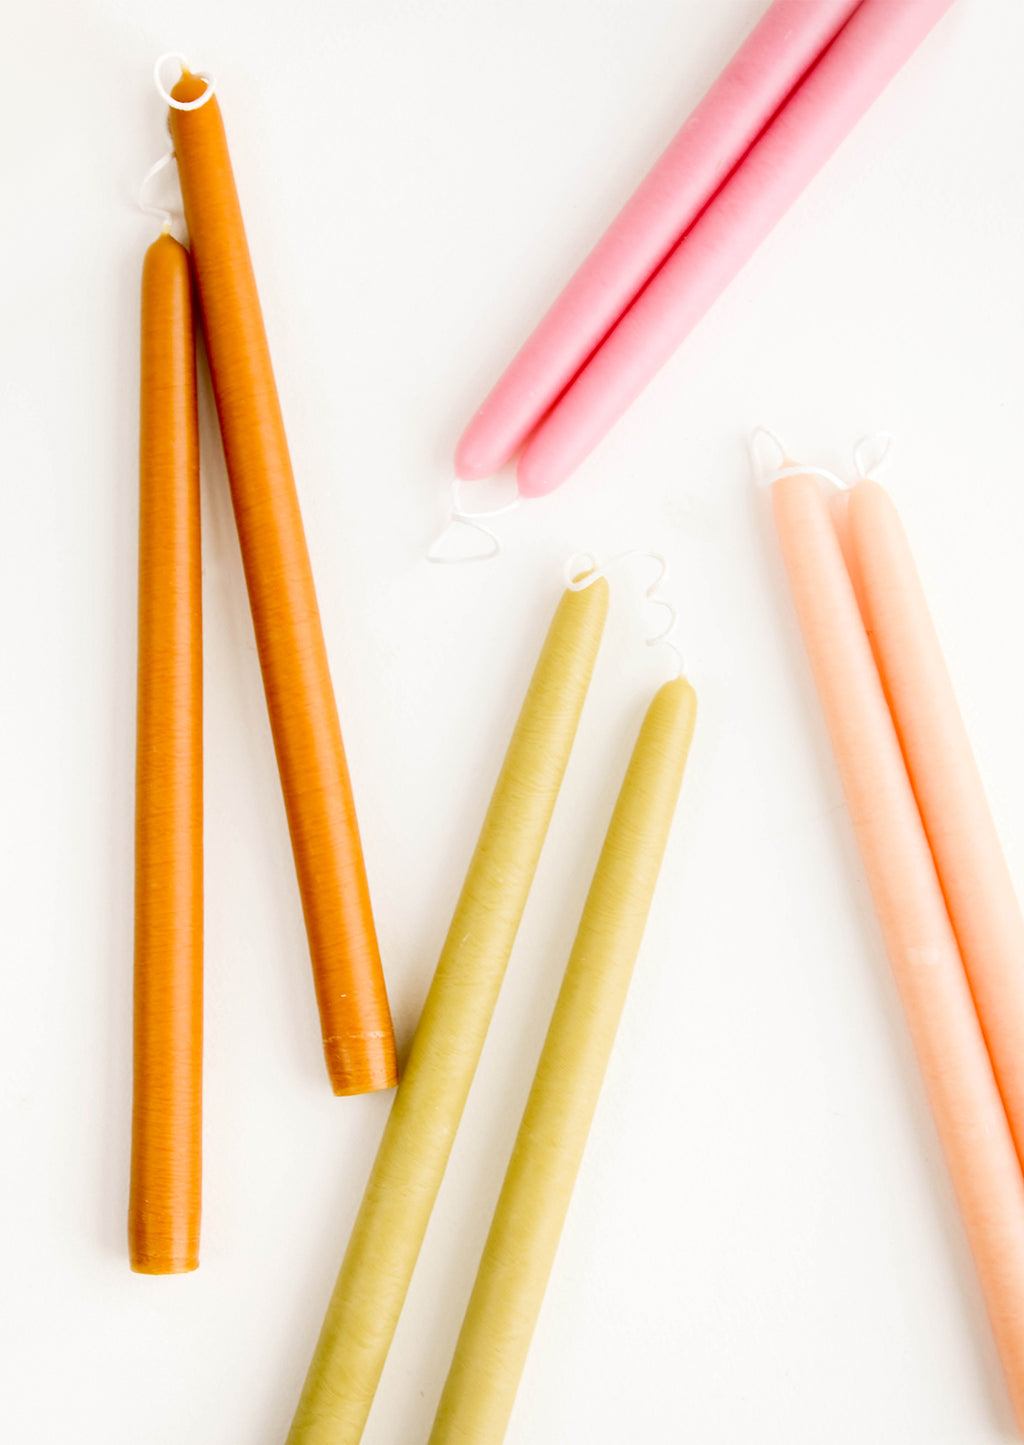 6: An arrangement of colorful taper candles